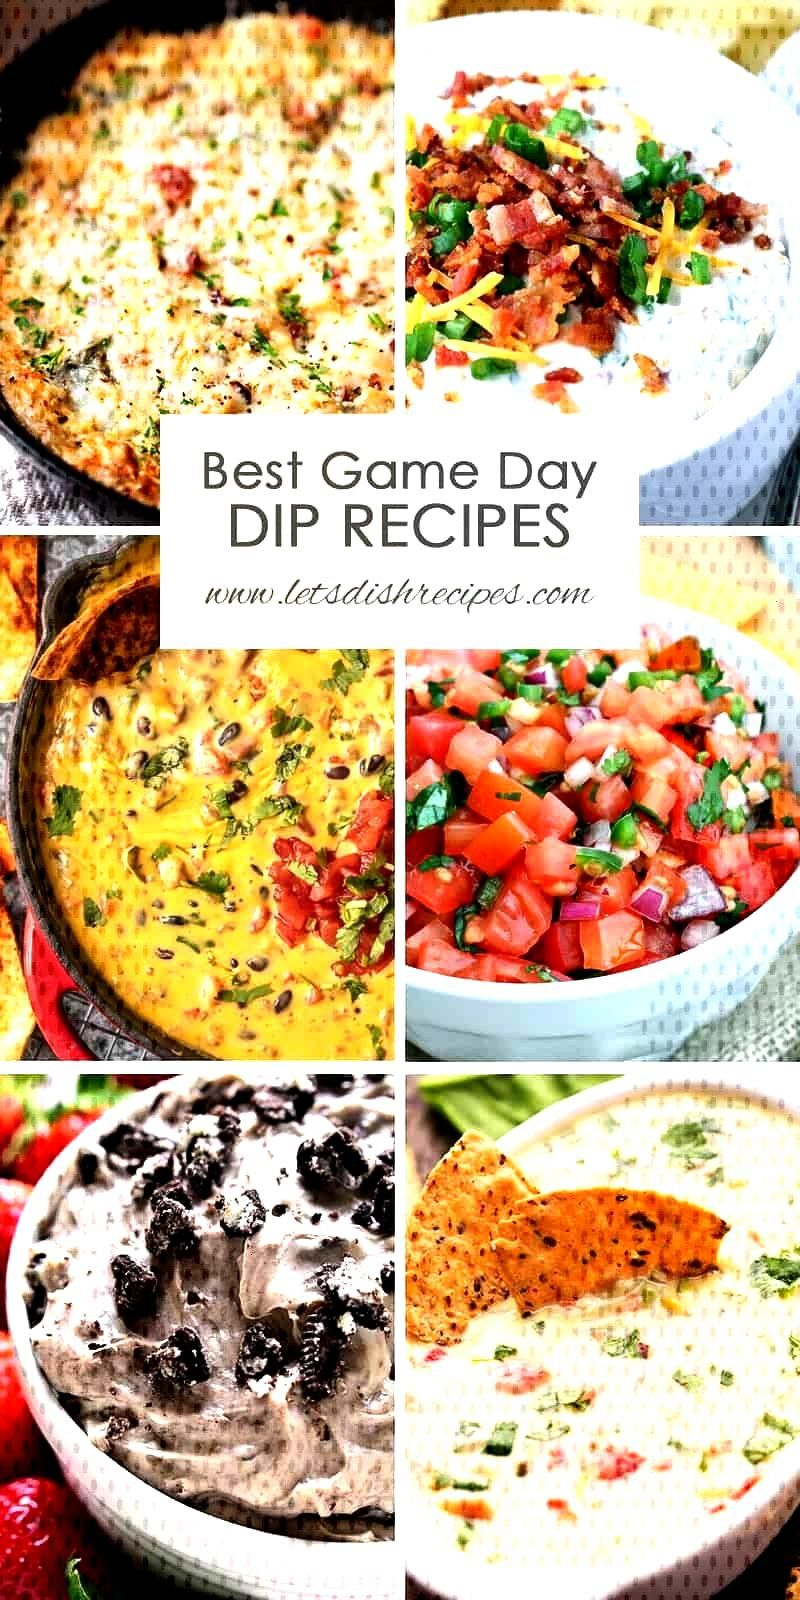 Best Game Day Dip Recipes   Let's Dish Recipes Best Game Day Dip Recipes: The best delicious dips,